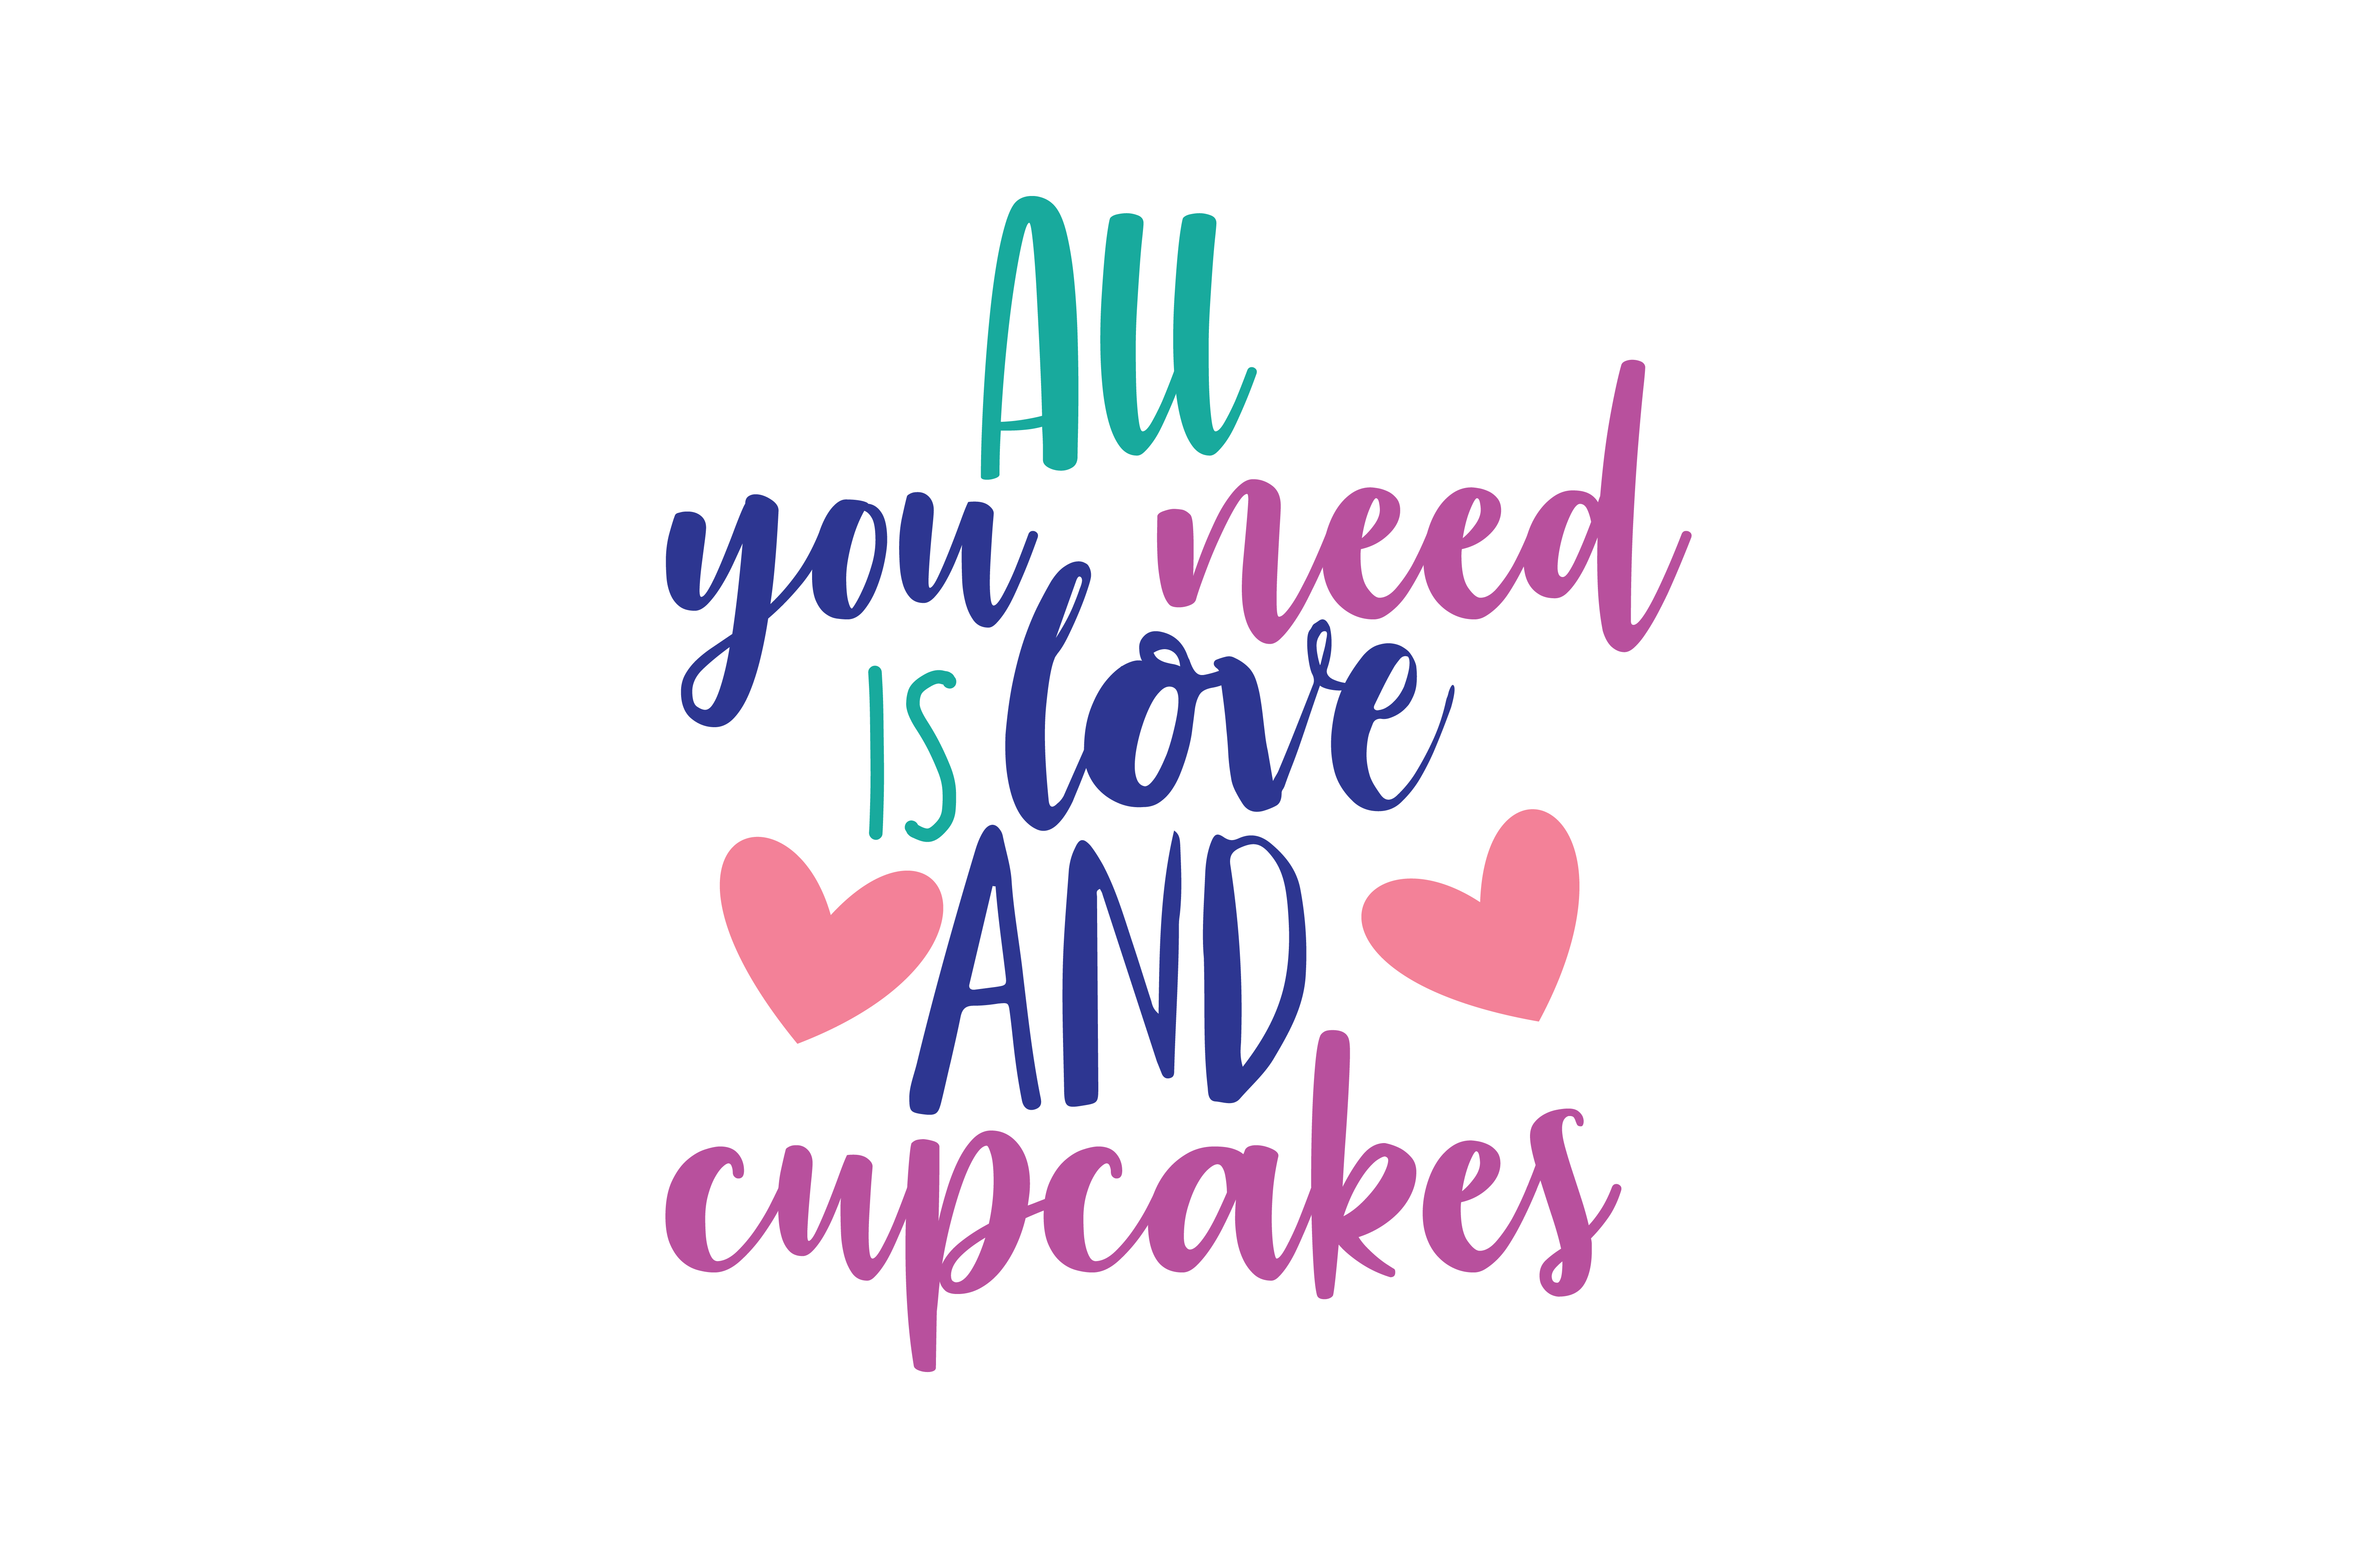 All You Need Is Love And Cupcakes Quote Svg Cut Graphic By Thelucky Creative Fabrica